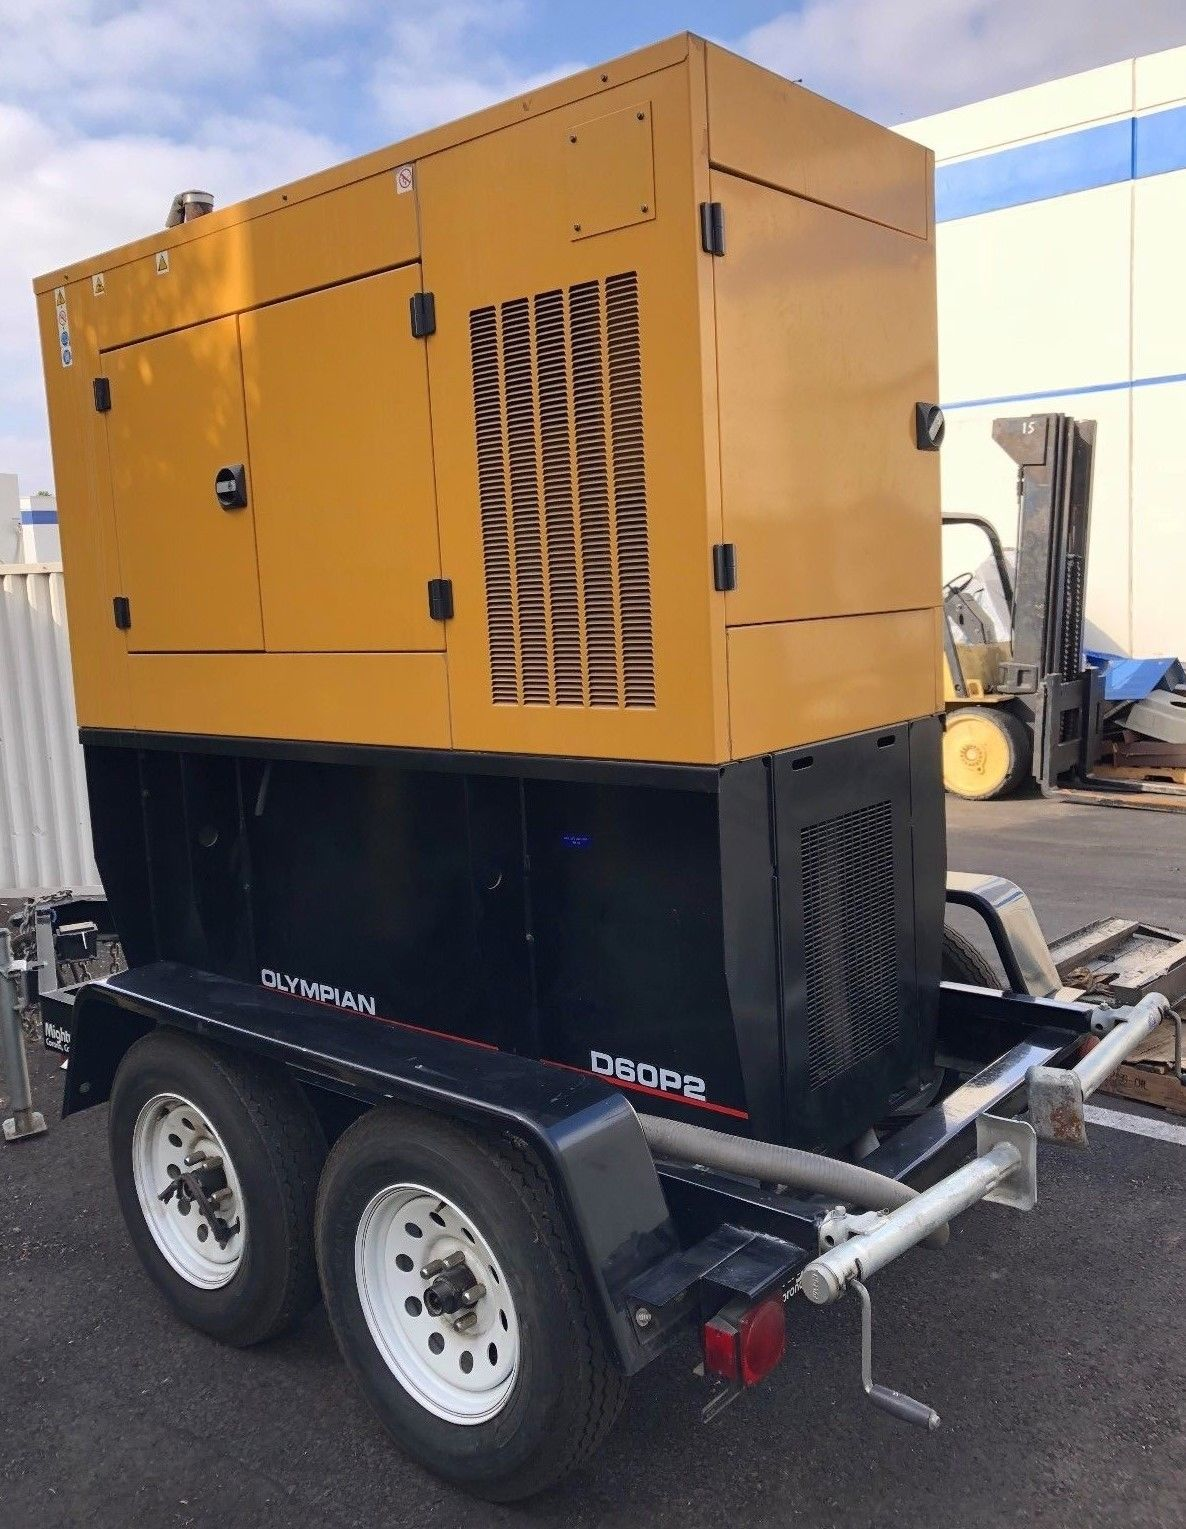 60Kw Caterpillar Olympian Mobile Diesel Generator with D60P2